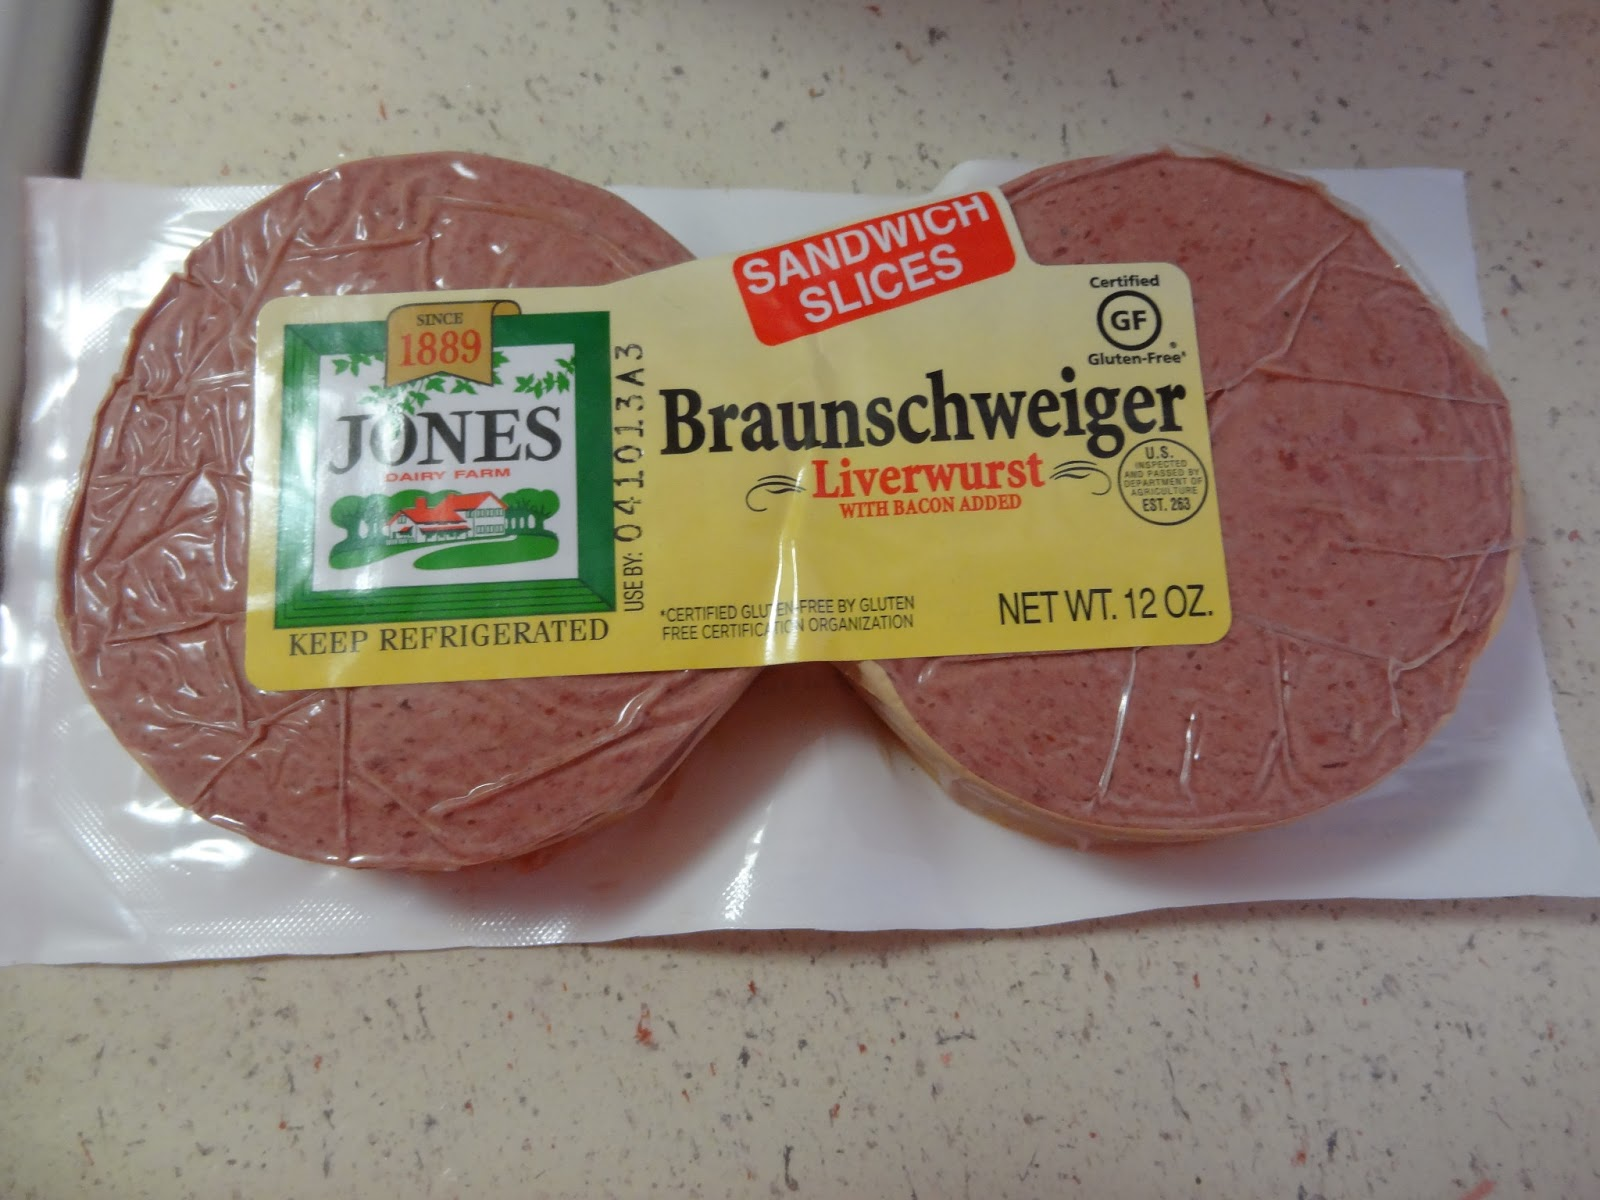 2620012510 furthermore 4470000999 moreover Open Faced Liverwurst Sandwich further Liver Sausage together with Product Vollwerth View. on braunschweiger ingredients